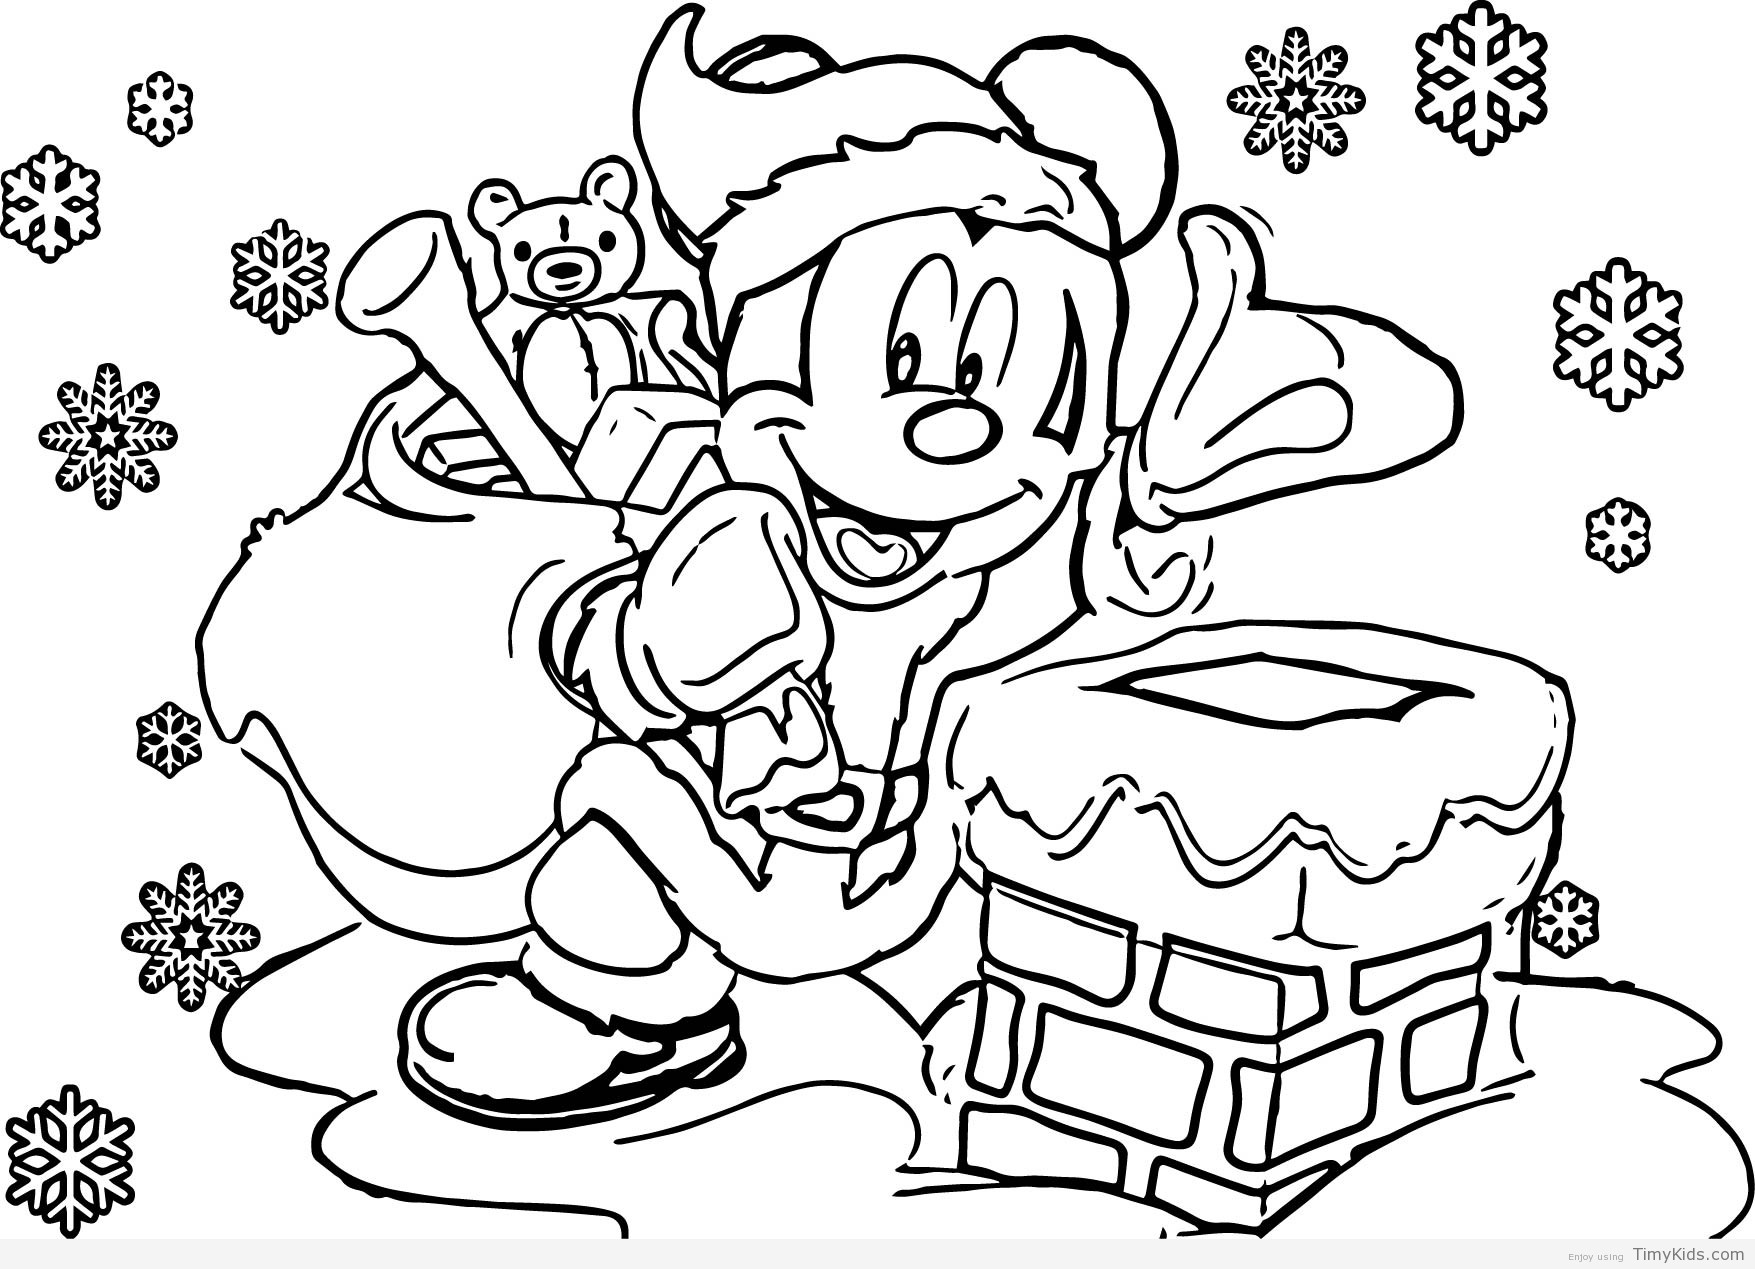 Santa Coloring Pages Printable Free With Sheet Medquit Xmas Fresh